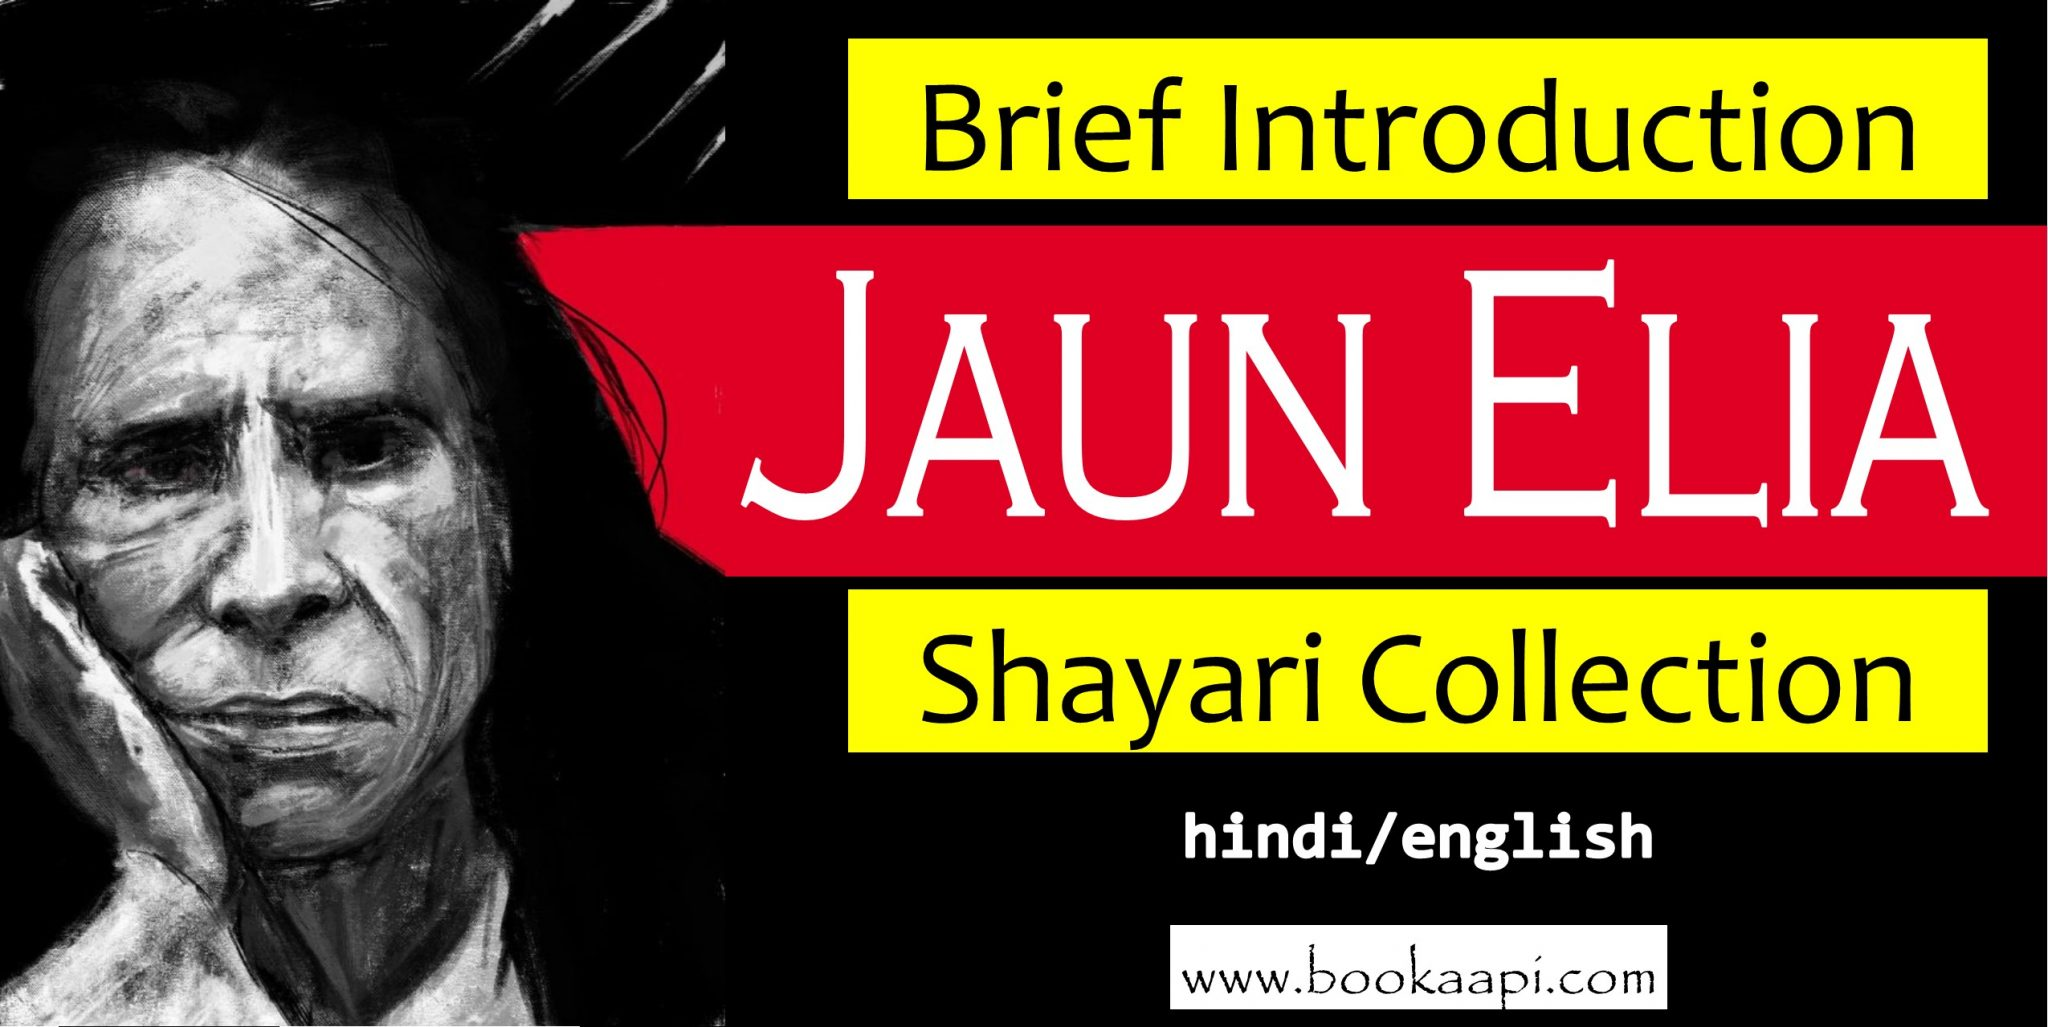 22 Best JAUN ELIA POETRY/Jaun Elia Shayari You MUST READ